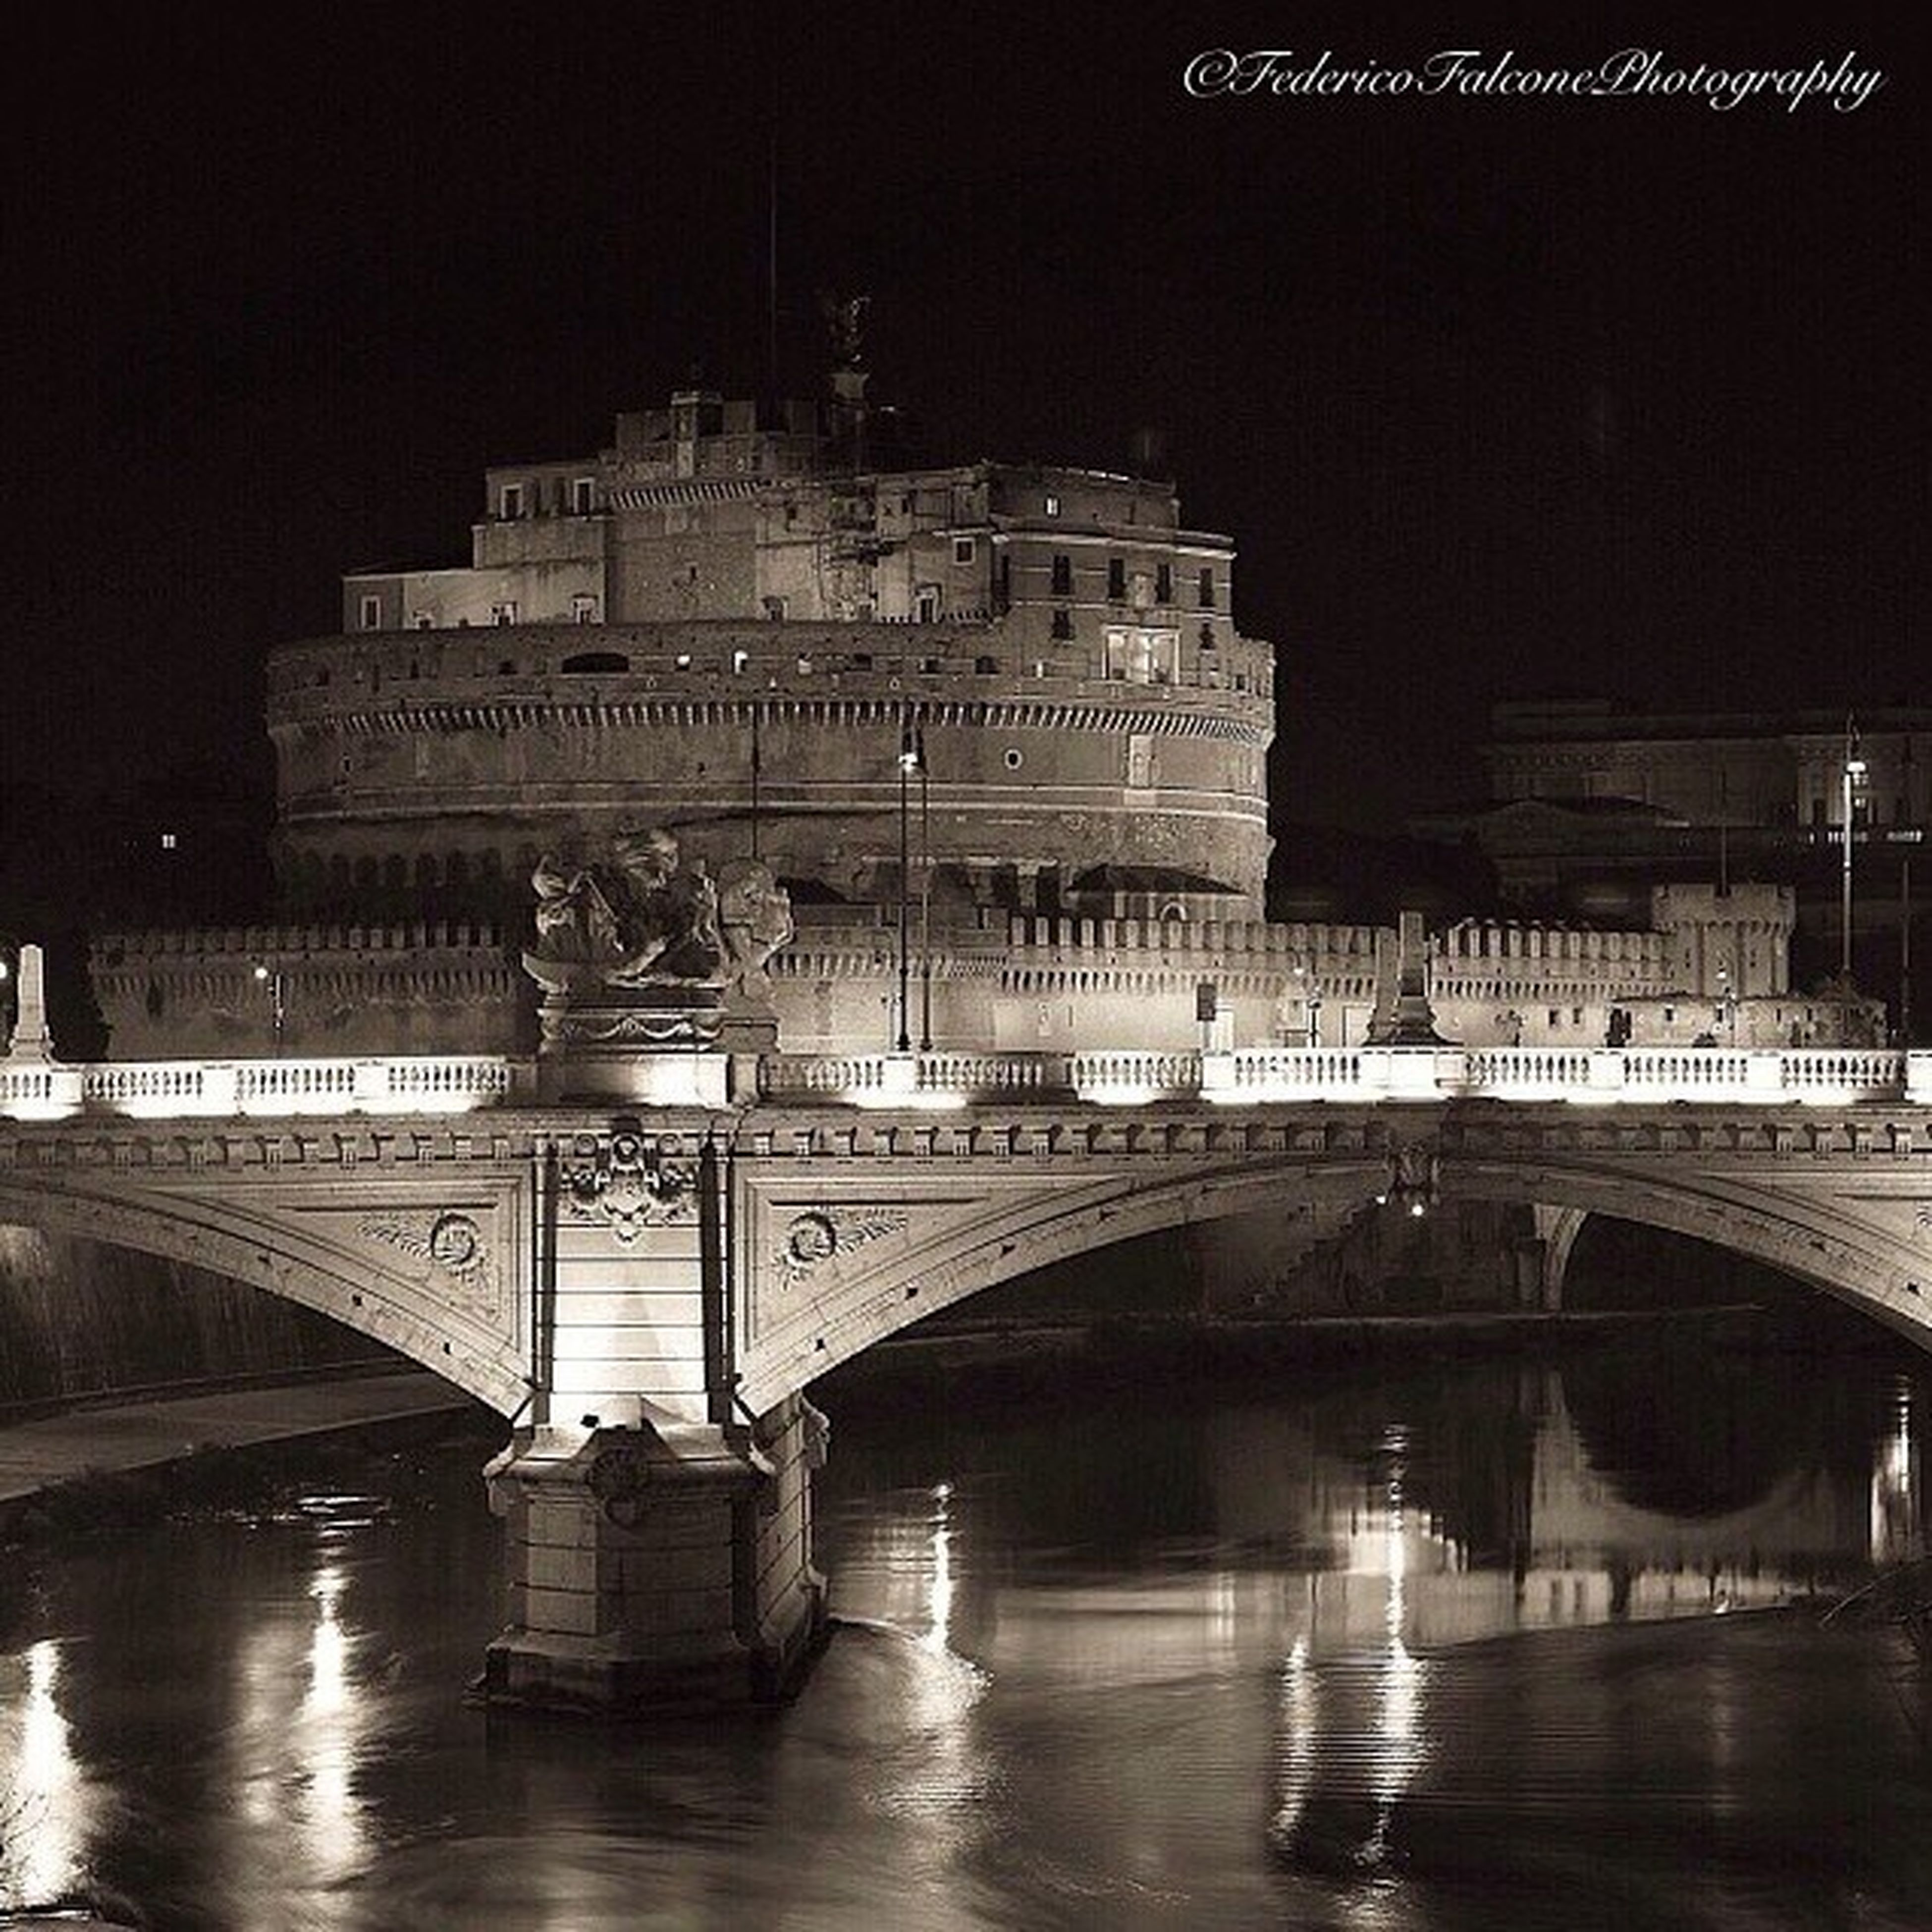 architecture, built structure, connection, bridge - man made structure, transportation, illuminated, night, arch, river, engineering, water, travel destinations, famous place, bridge, arch bridge, city, travel, building exterior, reflection, waterfront